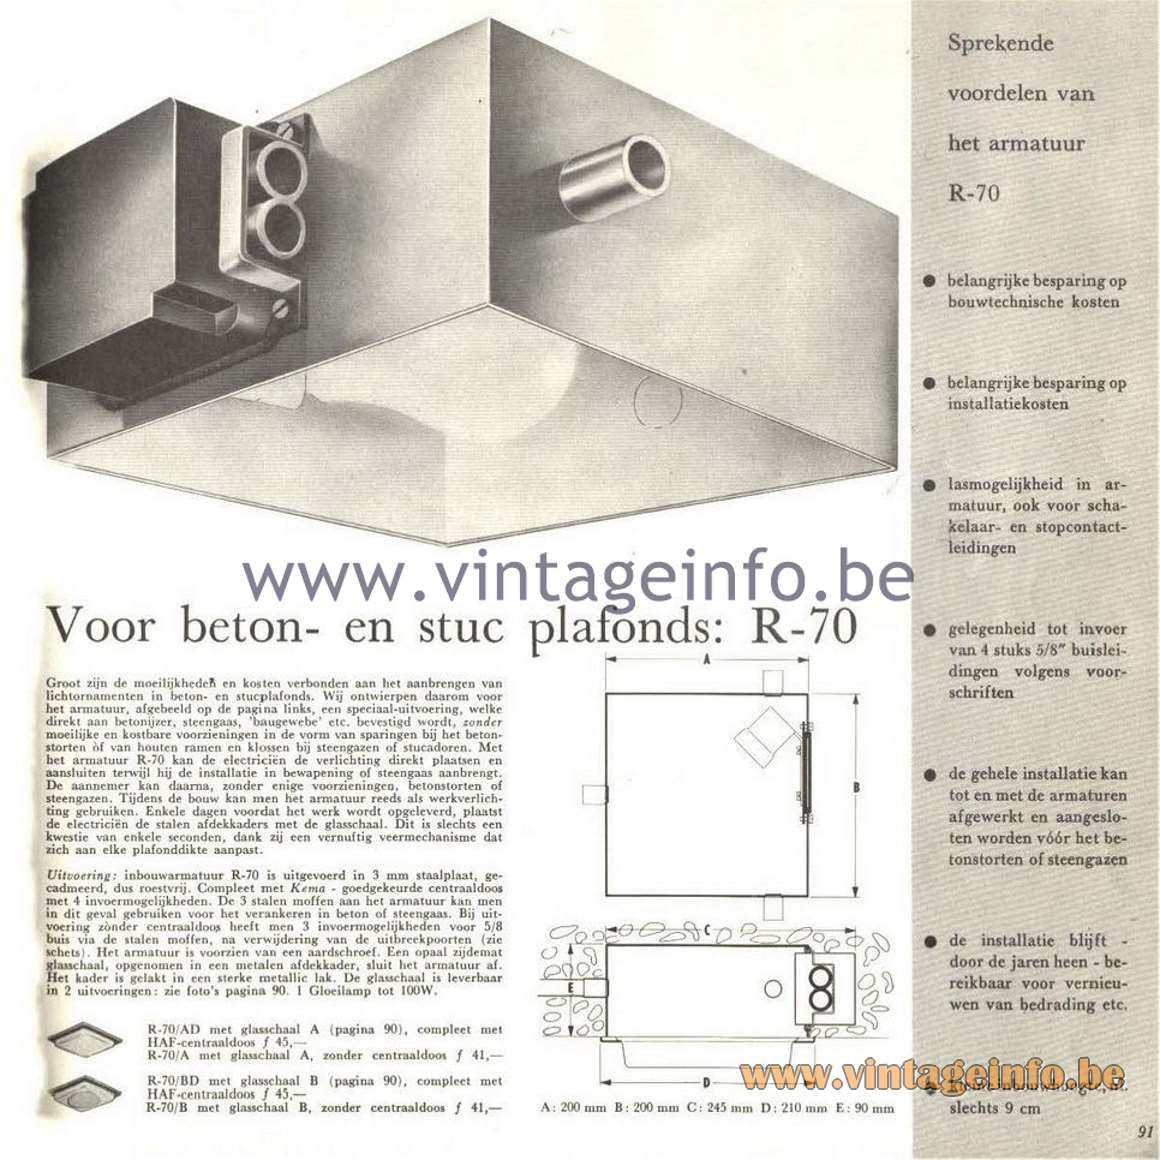 raak catalogue 5 page 8 vintage info all about vintage lighting. Black Bedroom Furniture Sets. Home Design Ideas